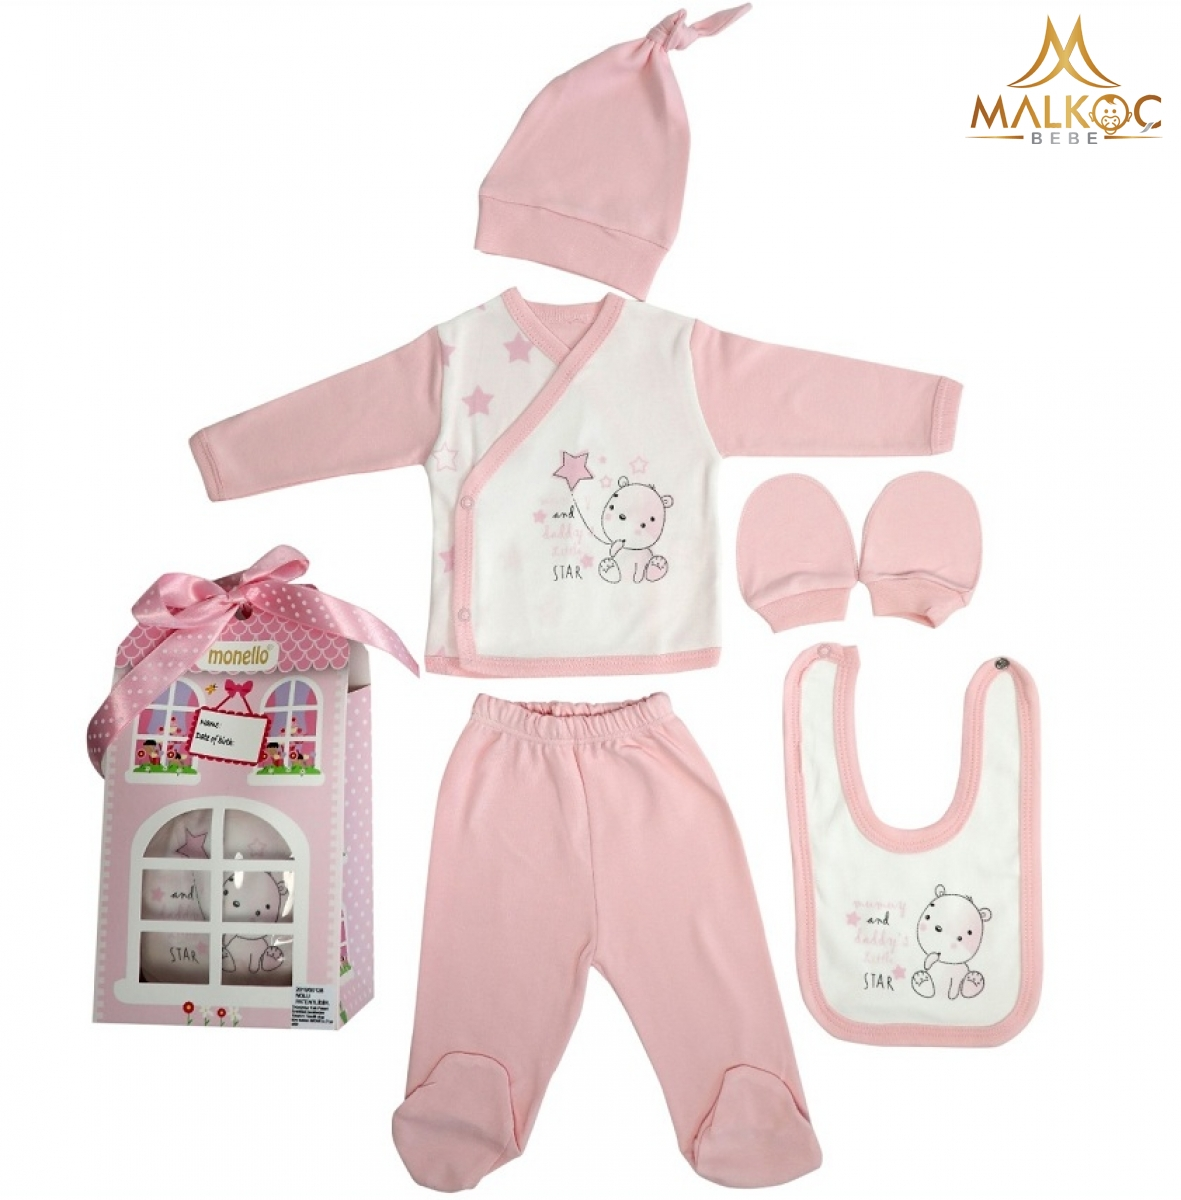 BEBE 5 Lİ PATTİSERİ 2 Lİ ZIBIN SET